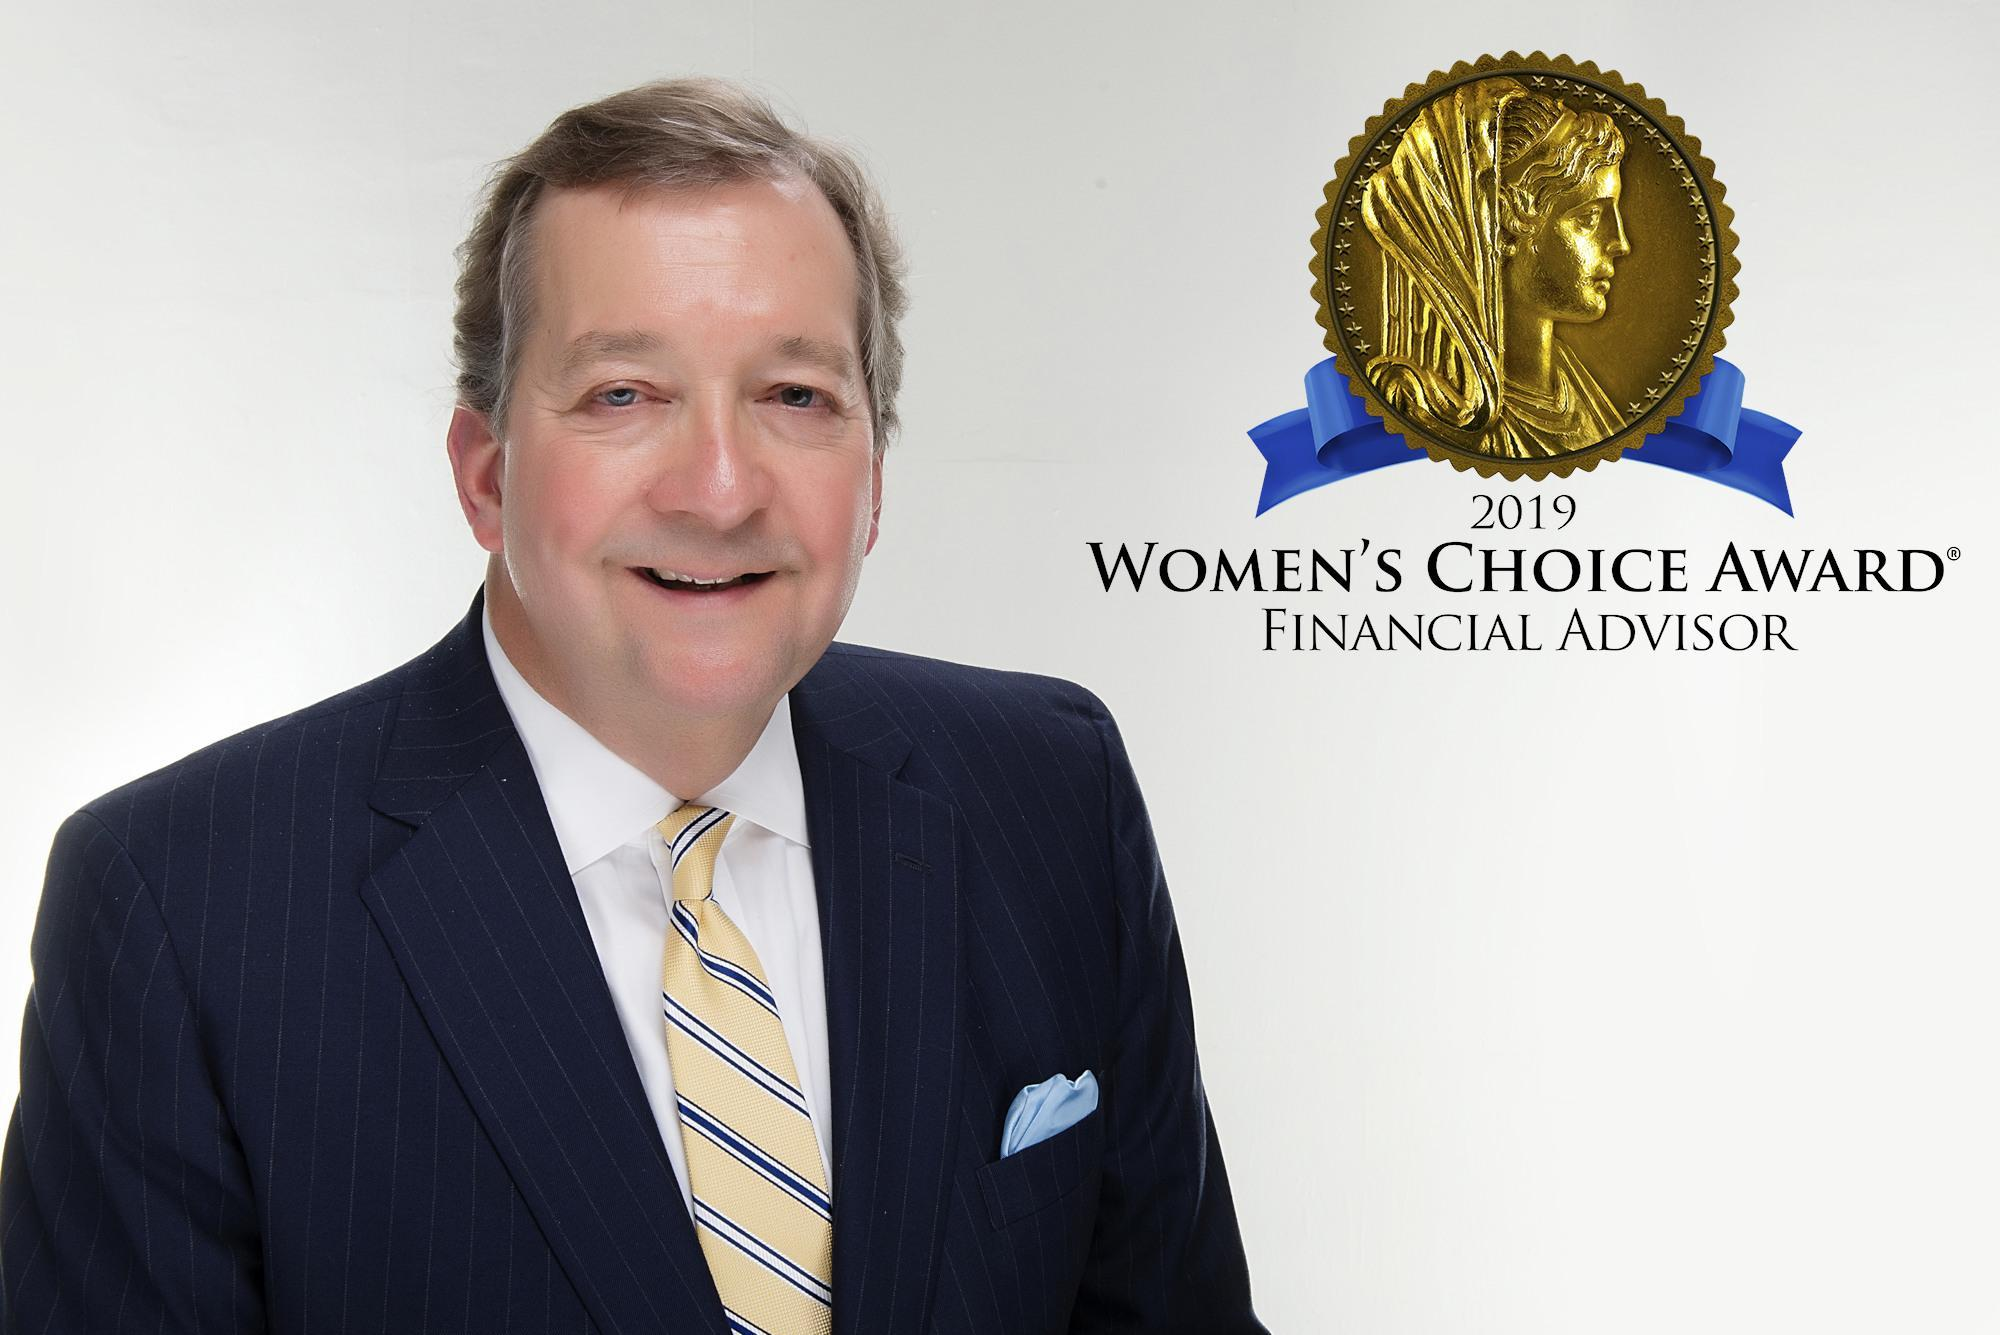 Michael L. Stone receives the Women's Choice Award®